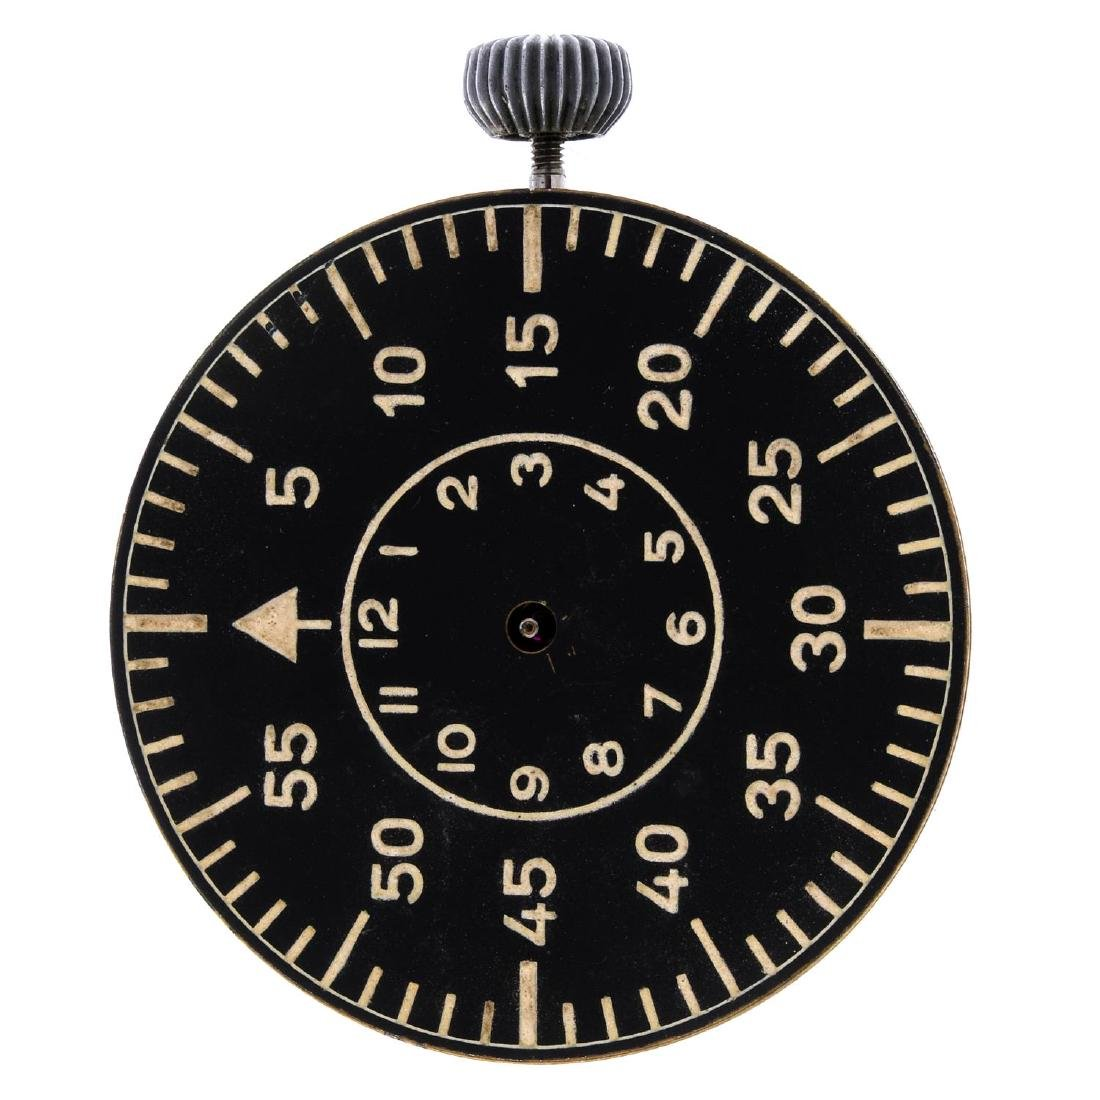 LACO - a WW2 Navigation watch movement. Numbered 02210.